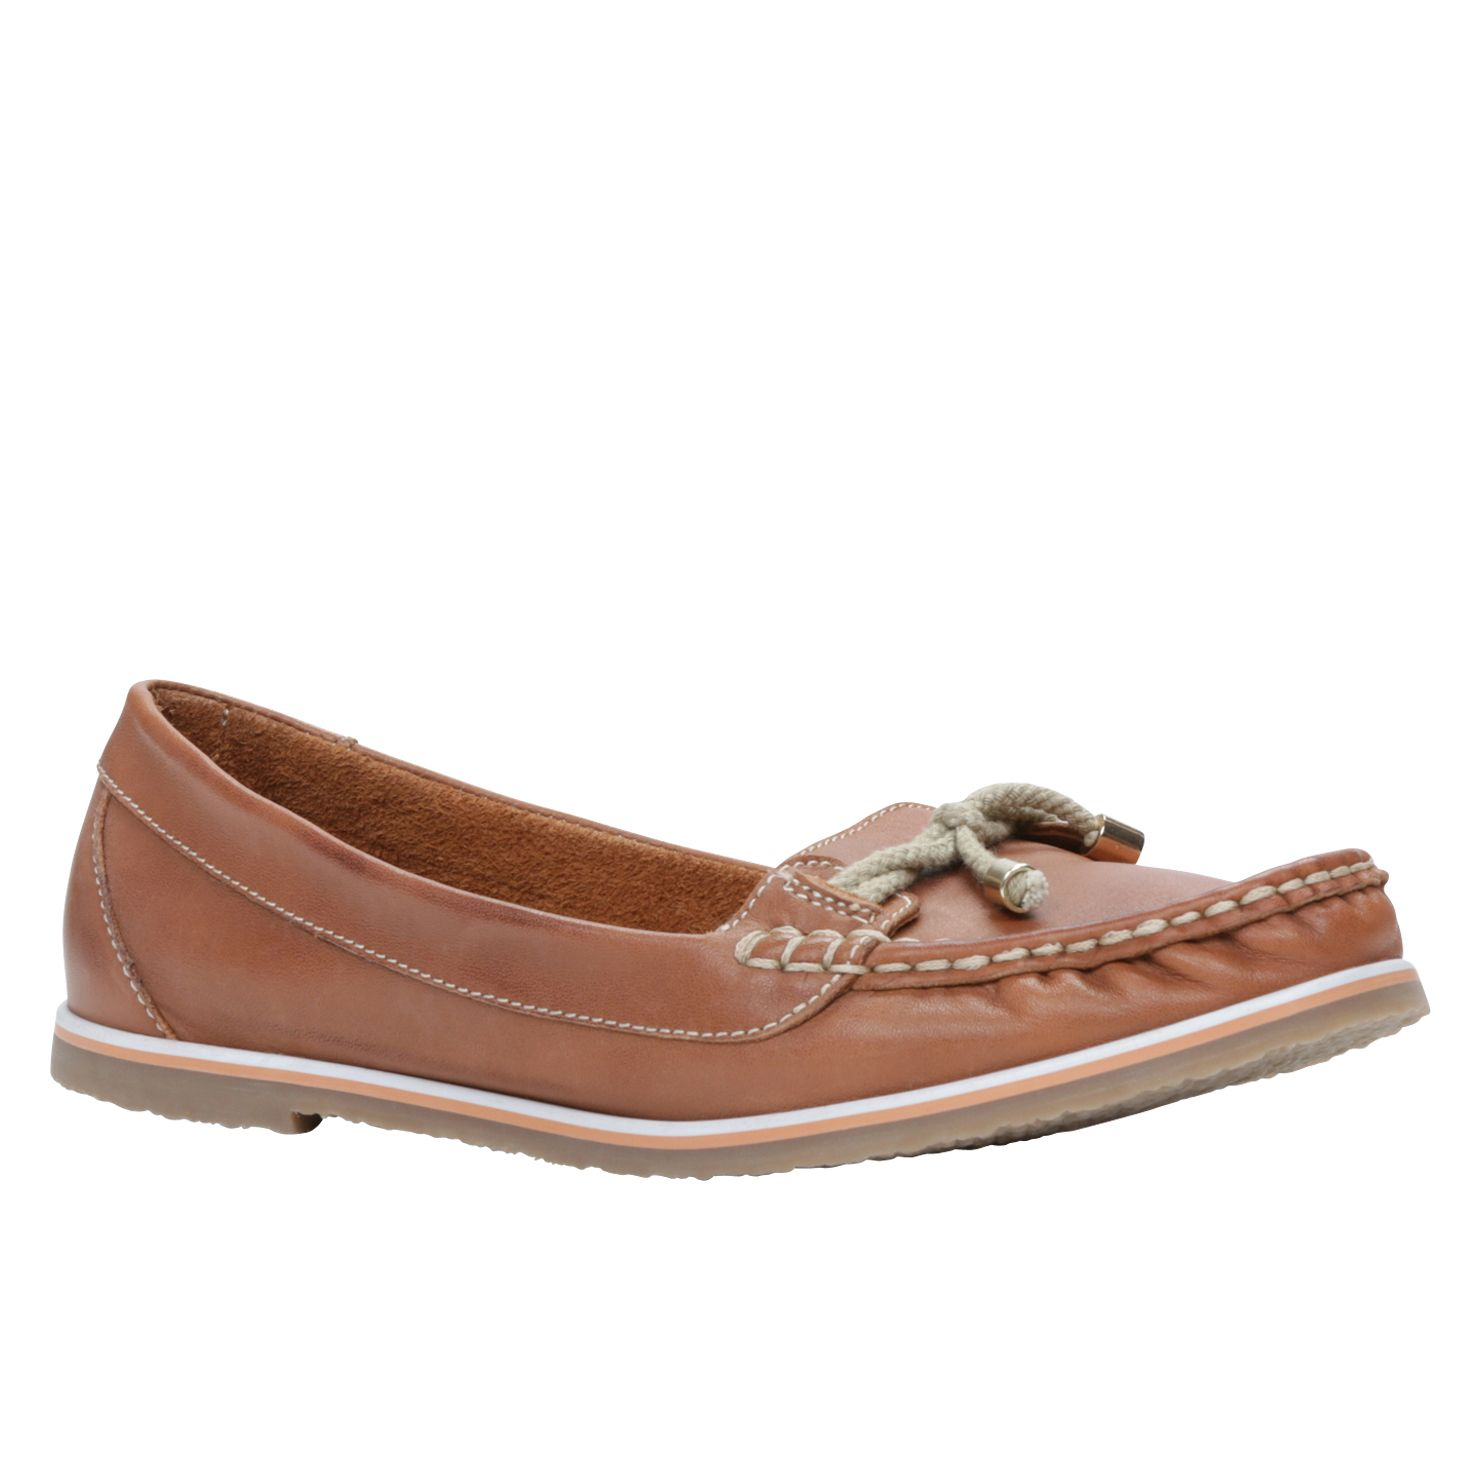 Freebairn round toe boat shoes